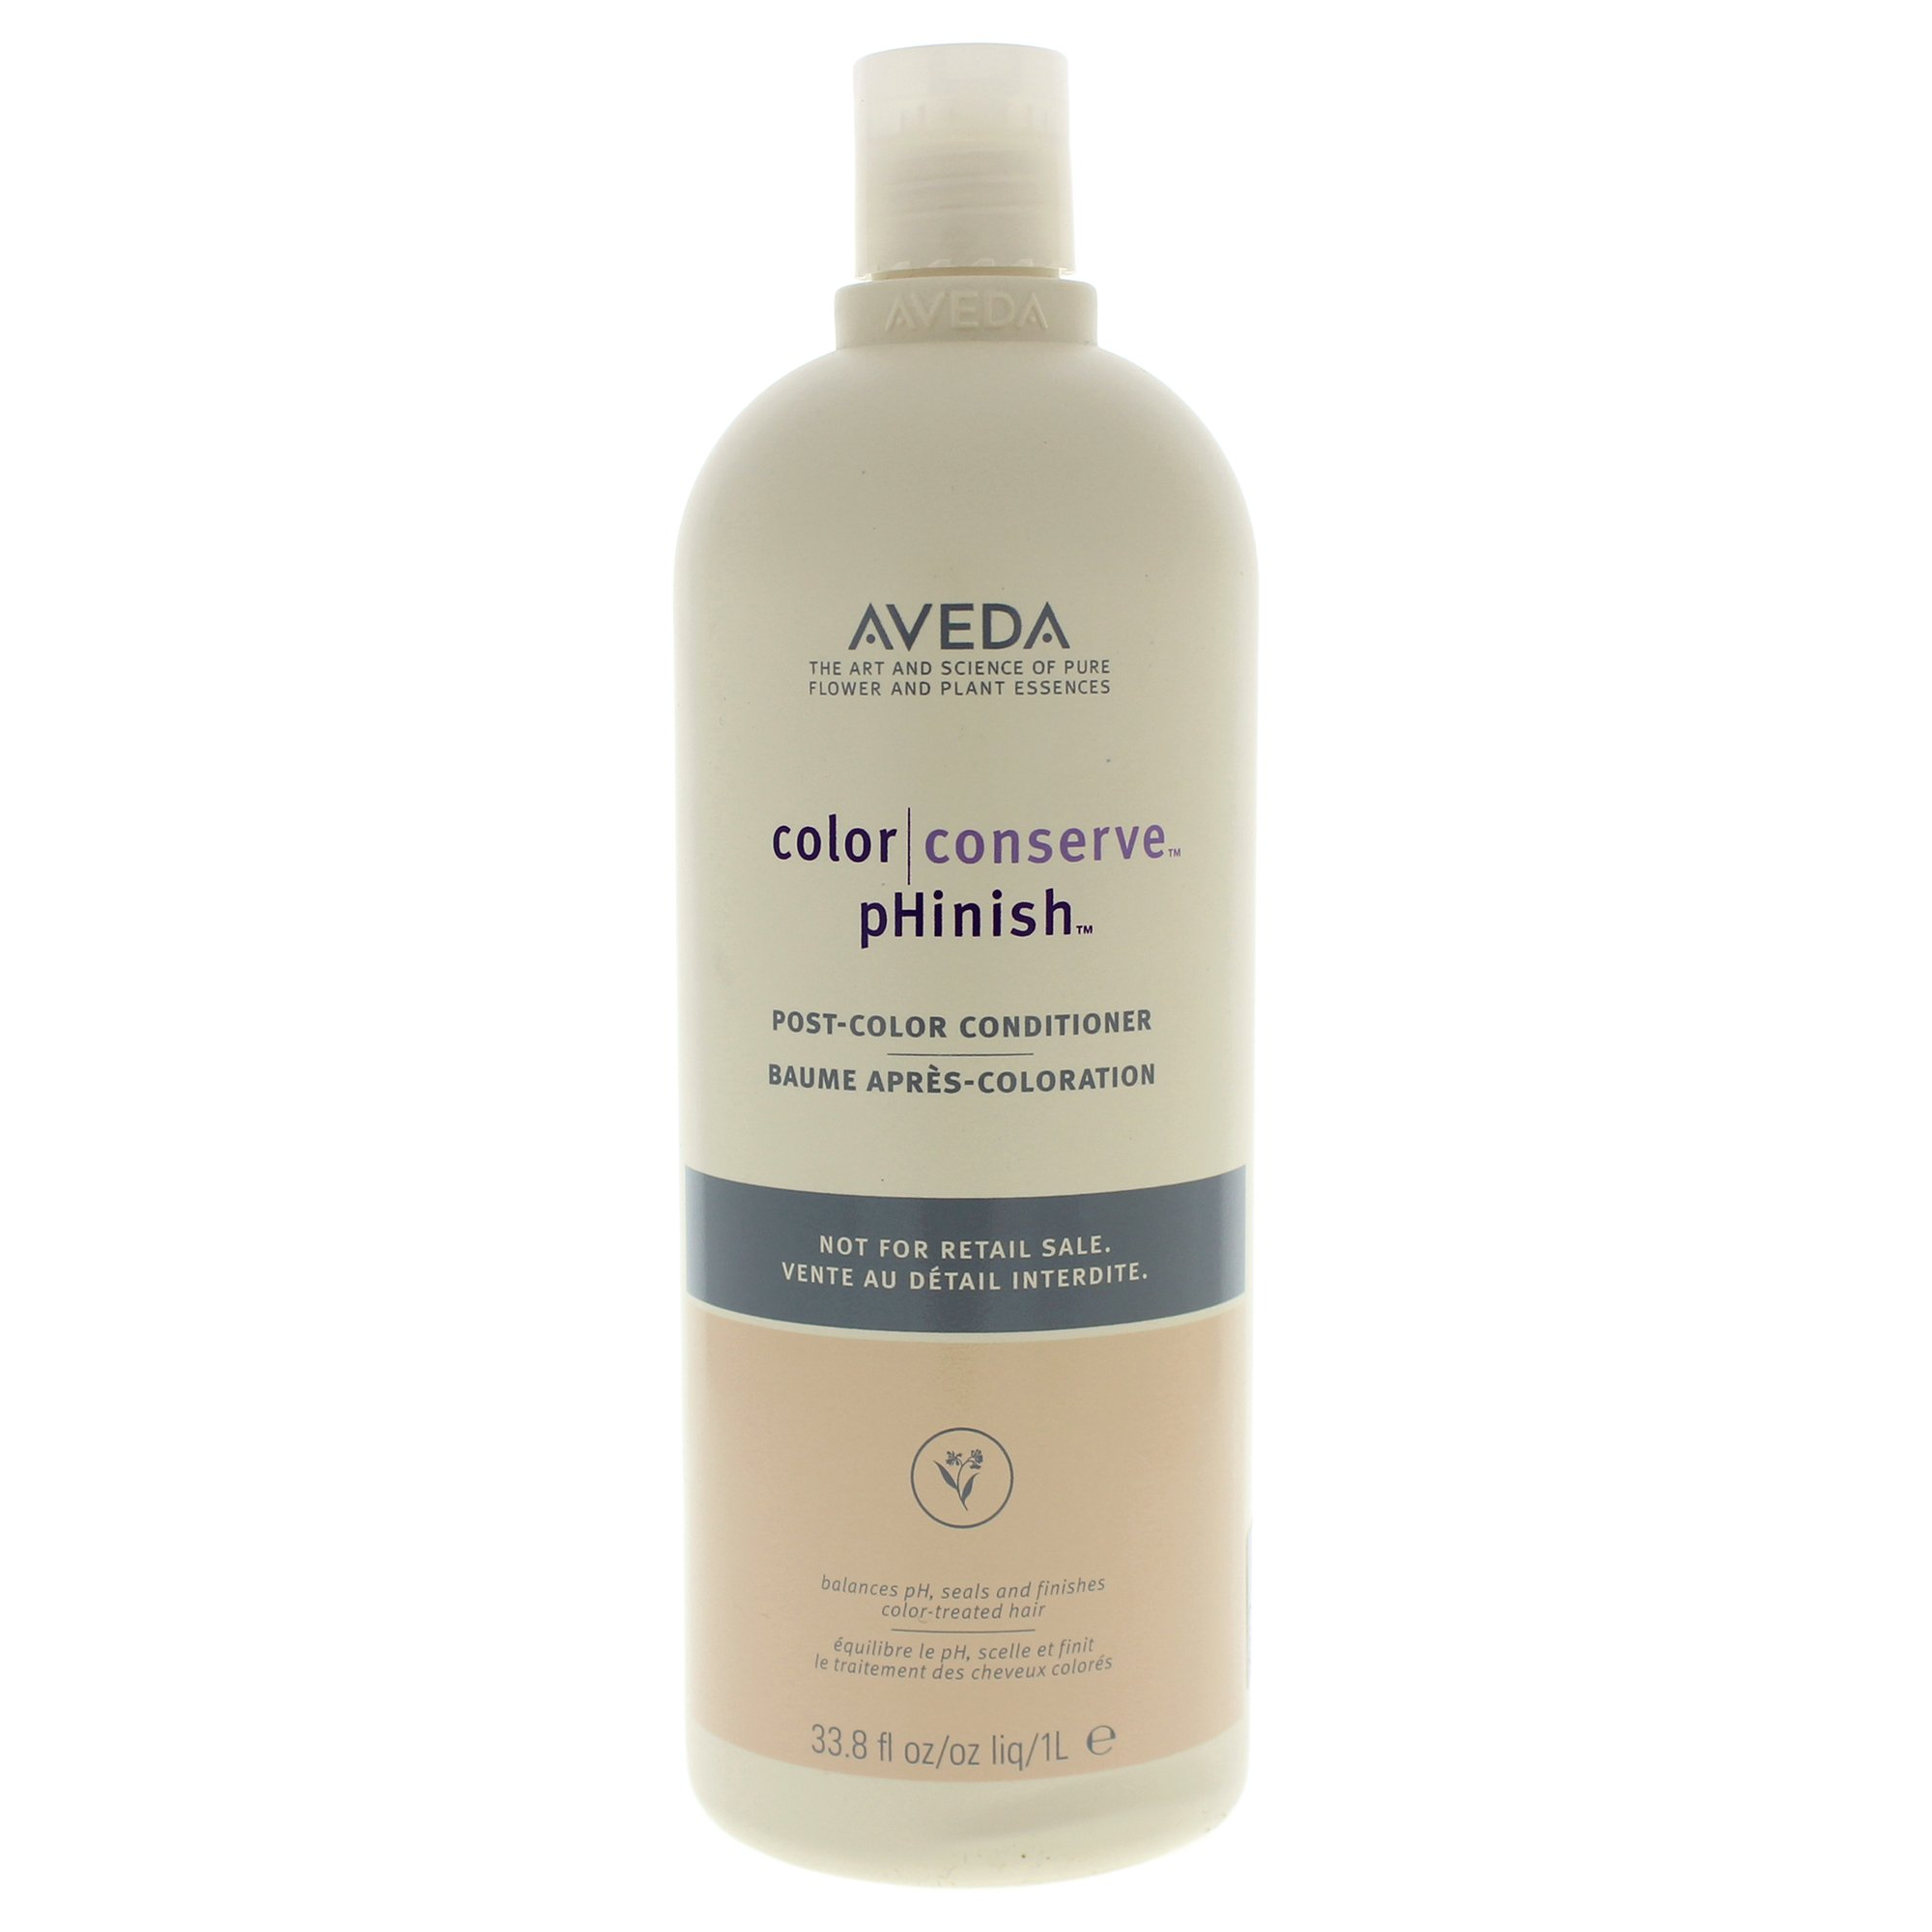 AVEDA Color Conserve pHinish post-color Conditioner, 33.8 Fluid Ounce by AVEDA